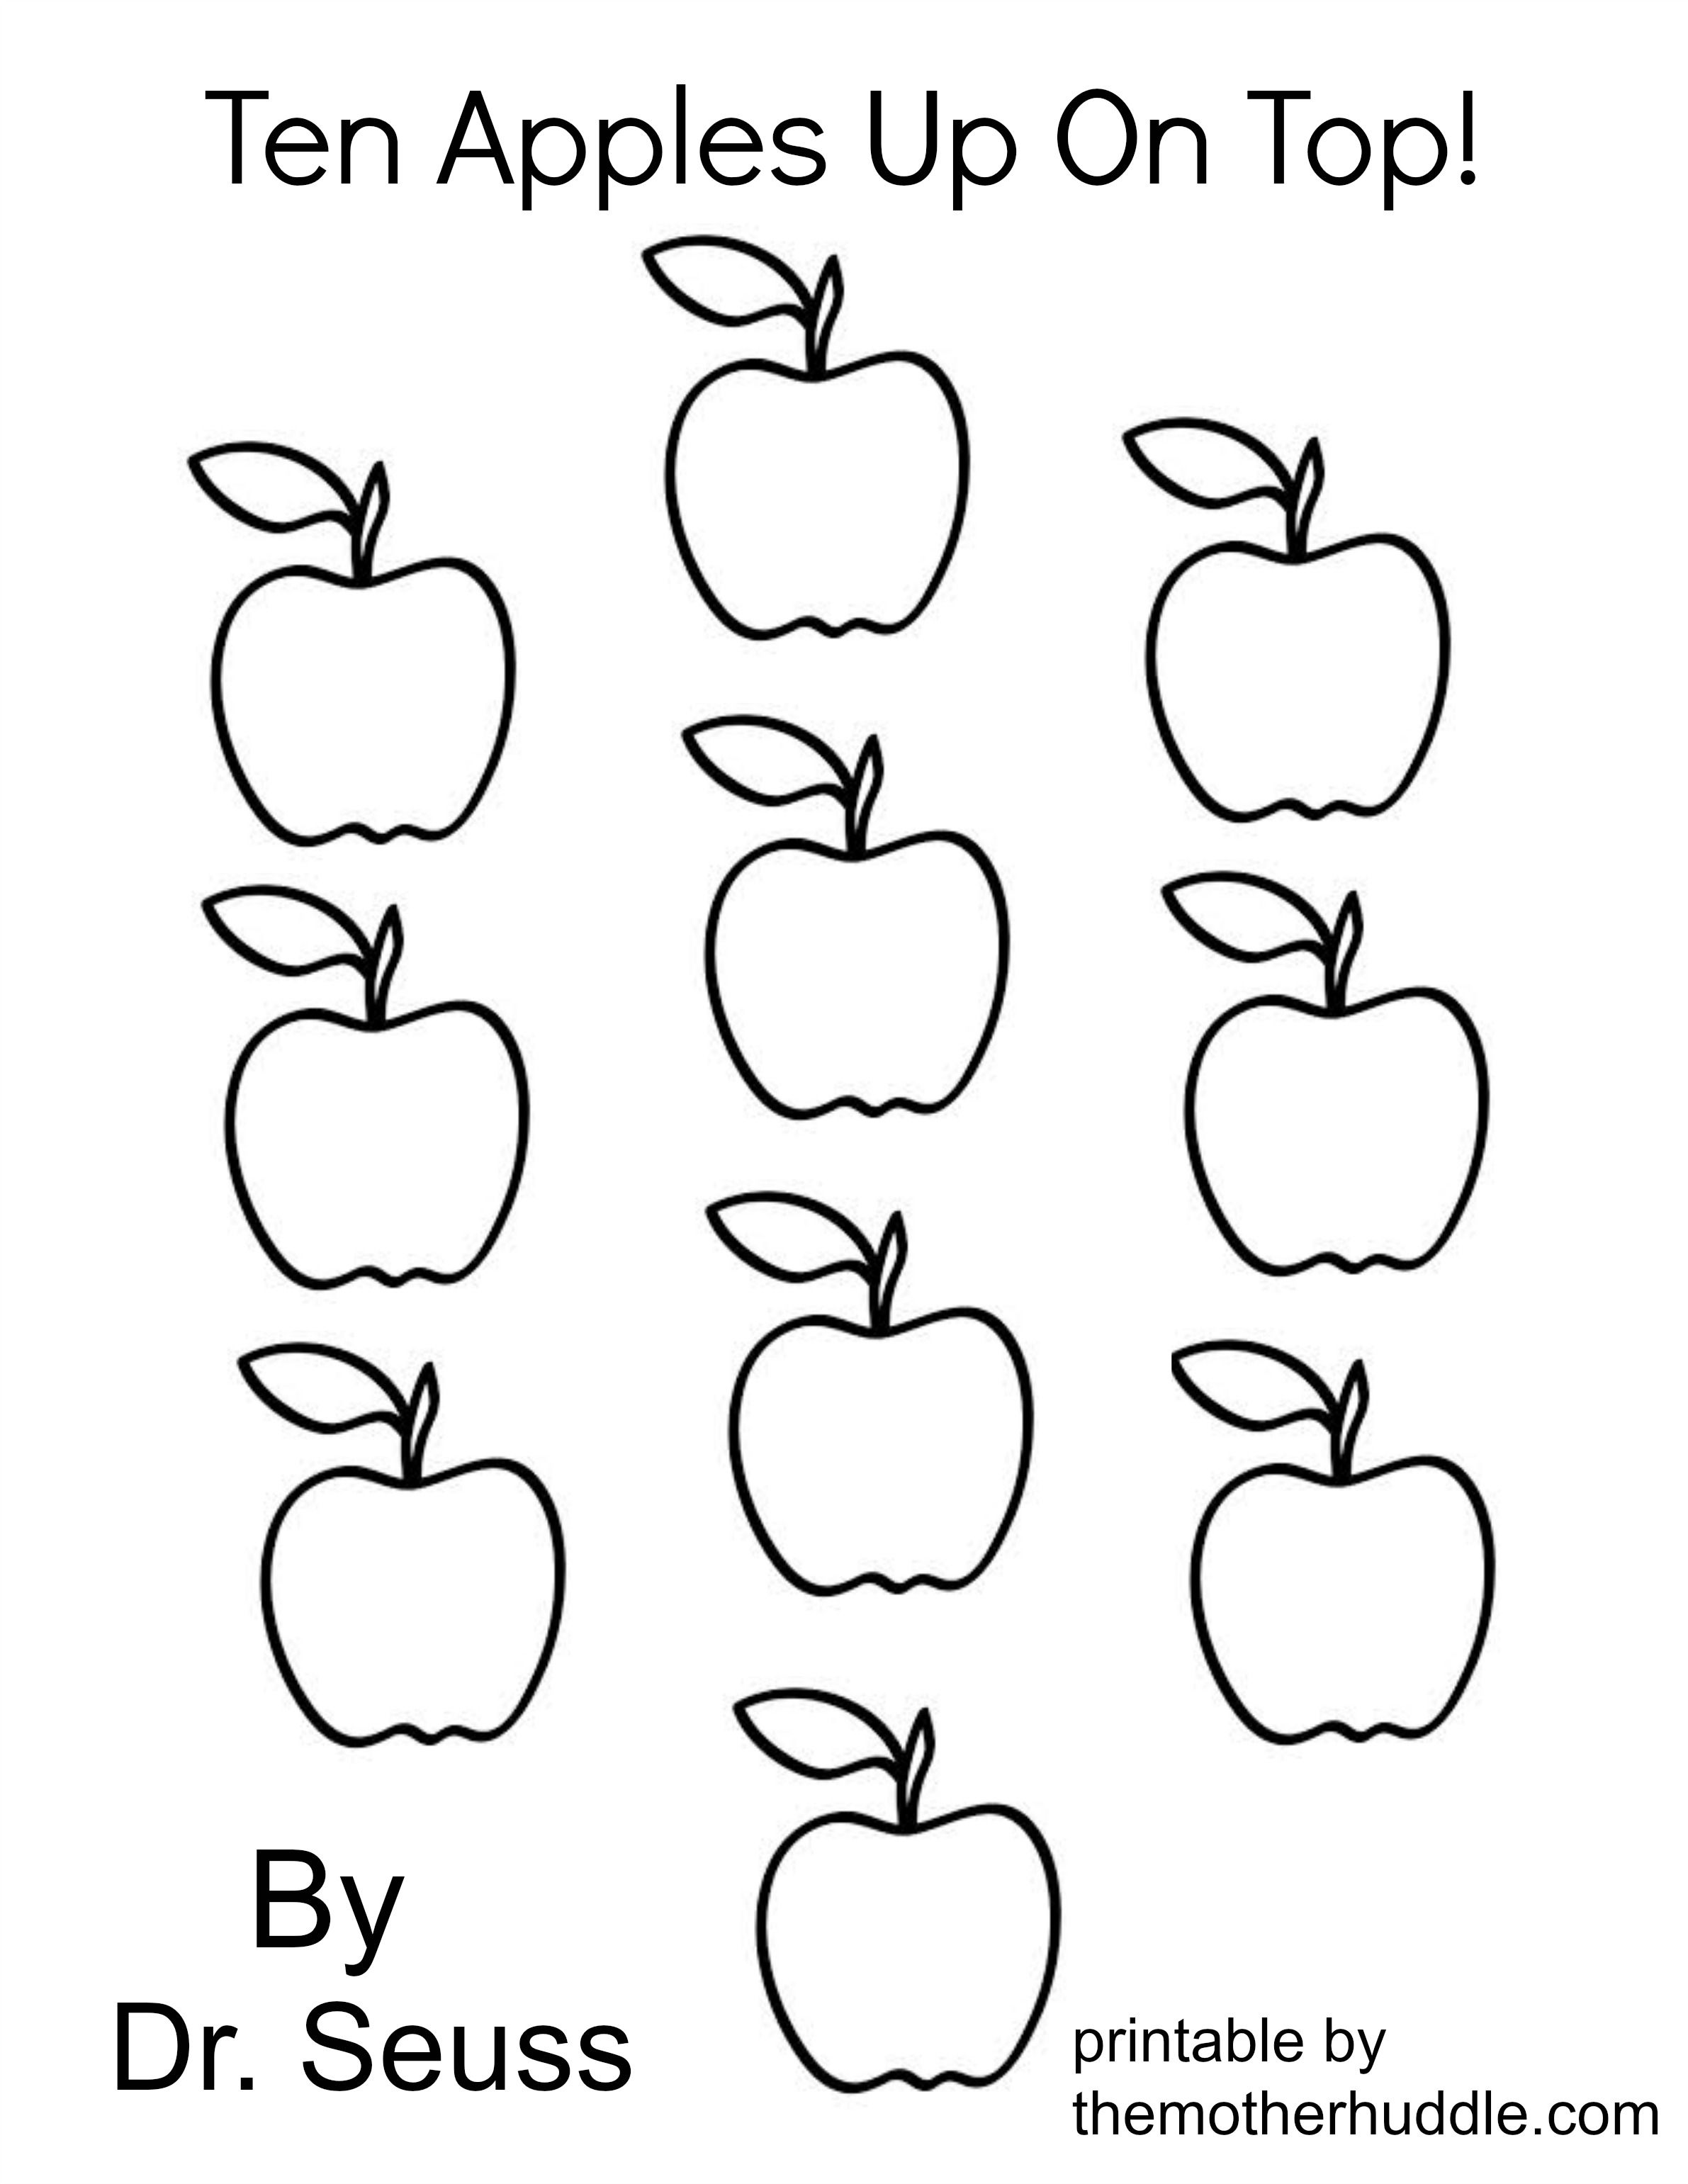 Ten Apples Up On Top Dr Seuss Coloring Page